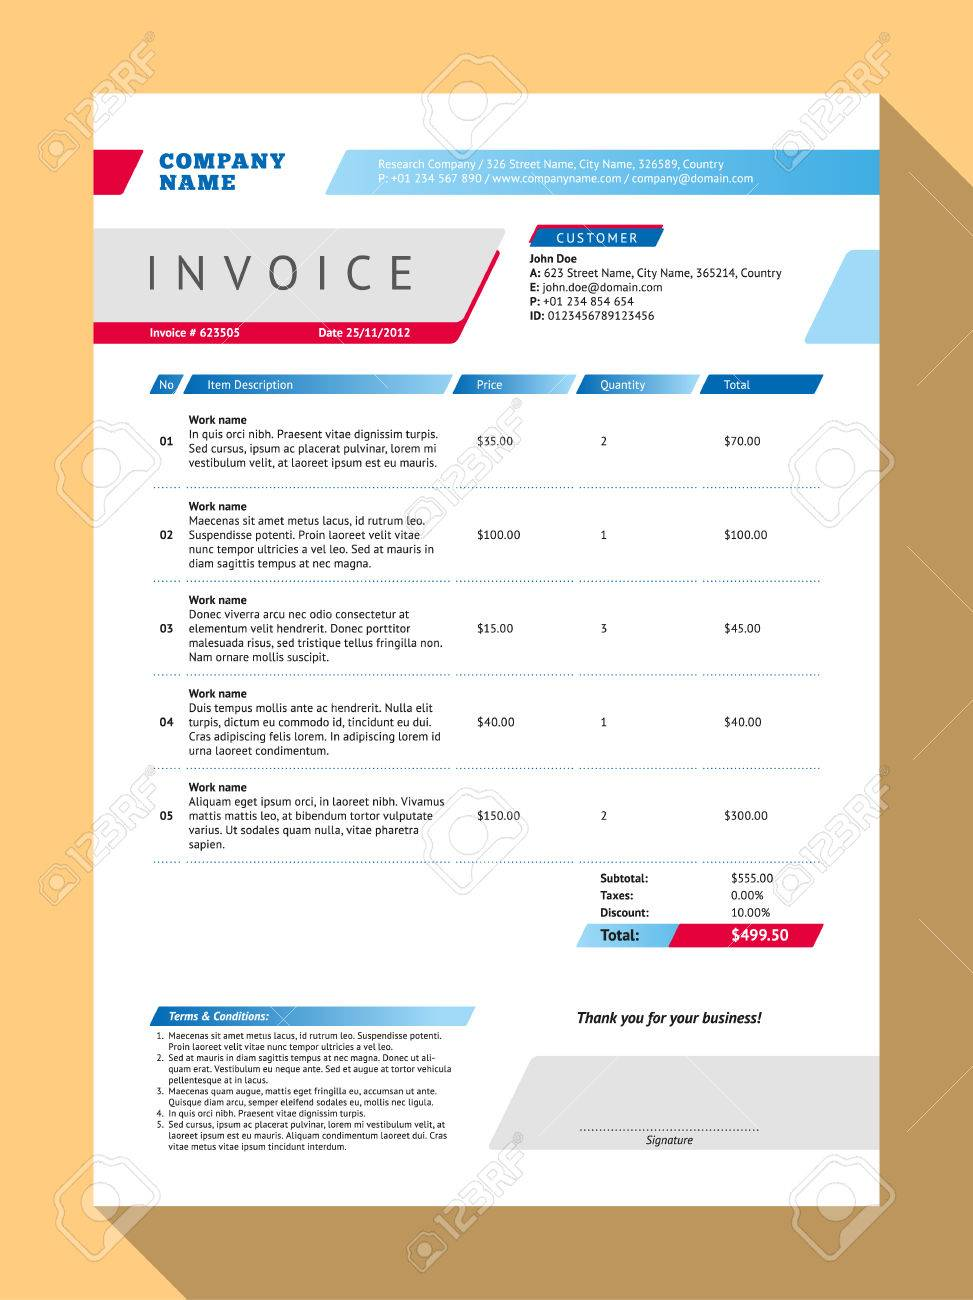 Vector Personnalisable Invoice Form Template Design Vector